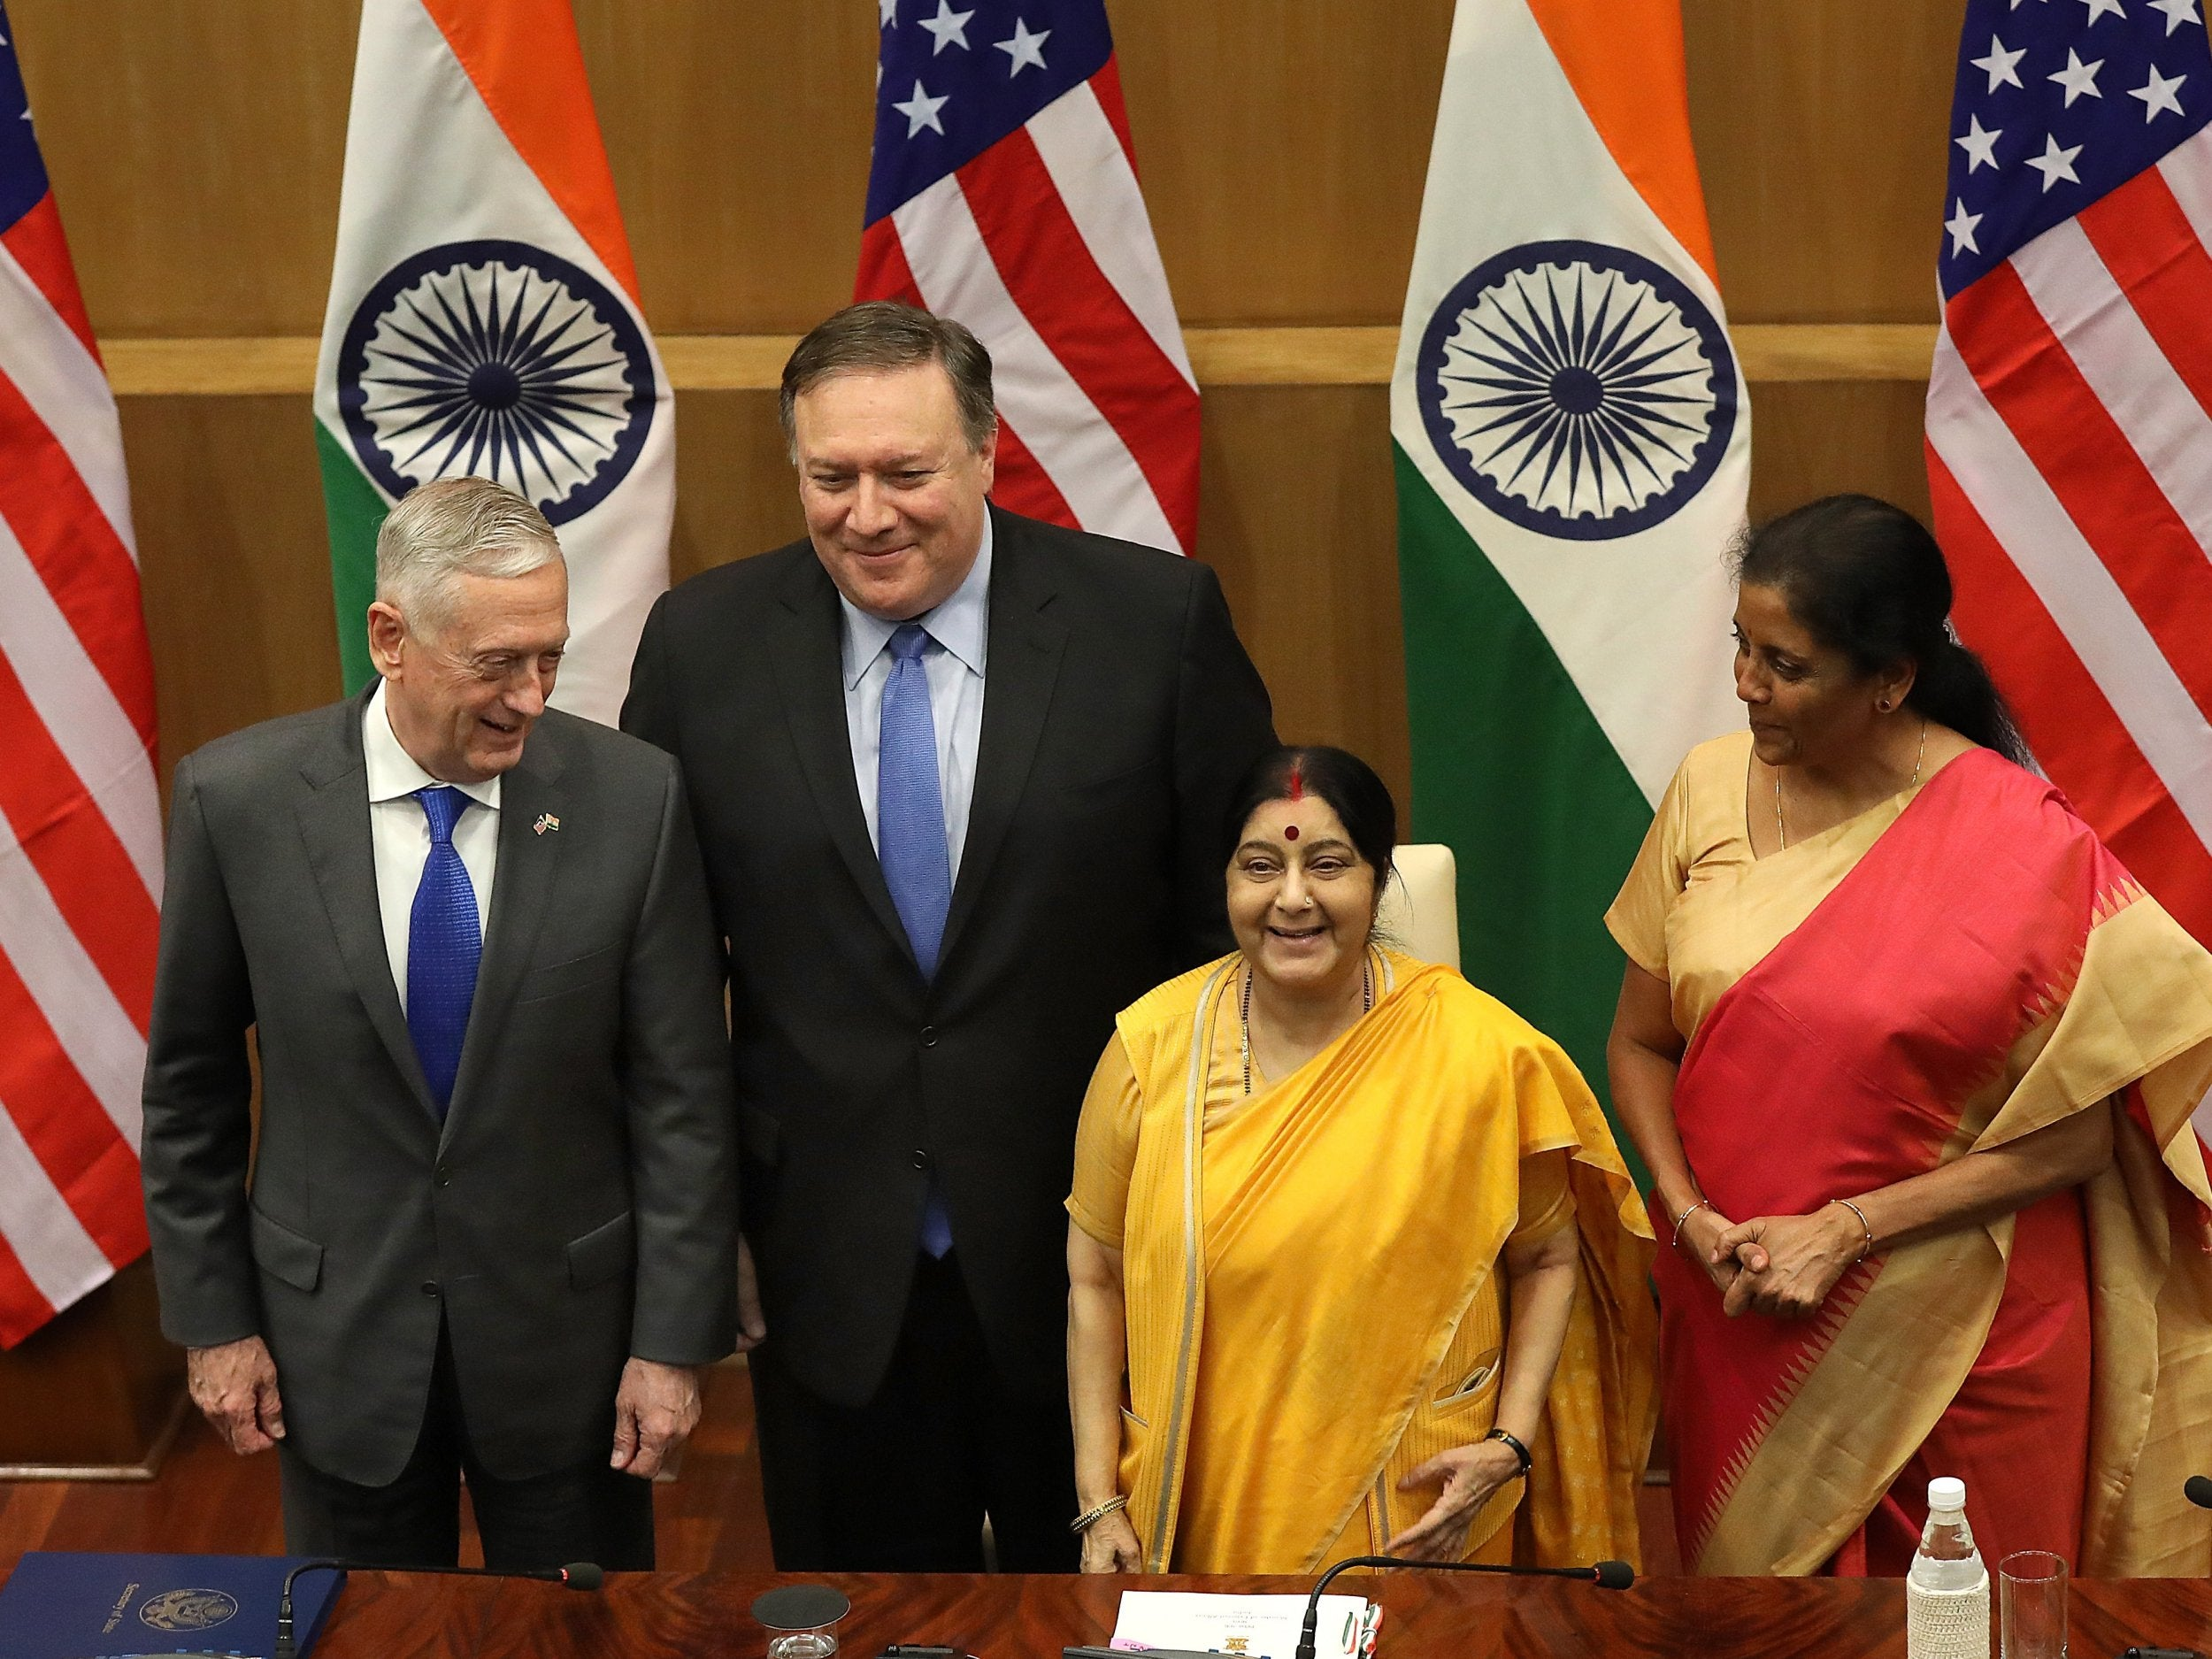 india and united states differences In contrast to india, the united states oversees the food markets and industries under its jurisdiction through a federal organization known as the food and drug administration.